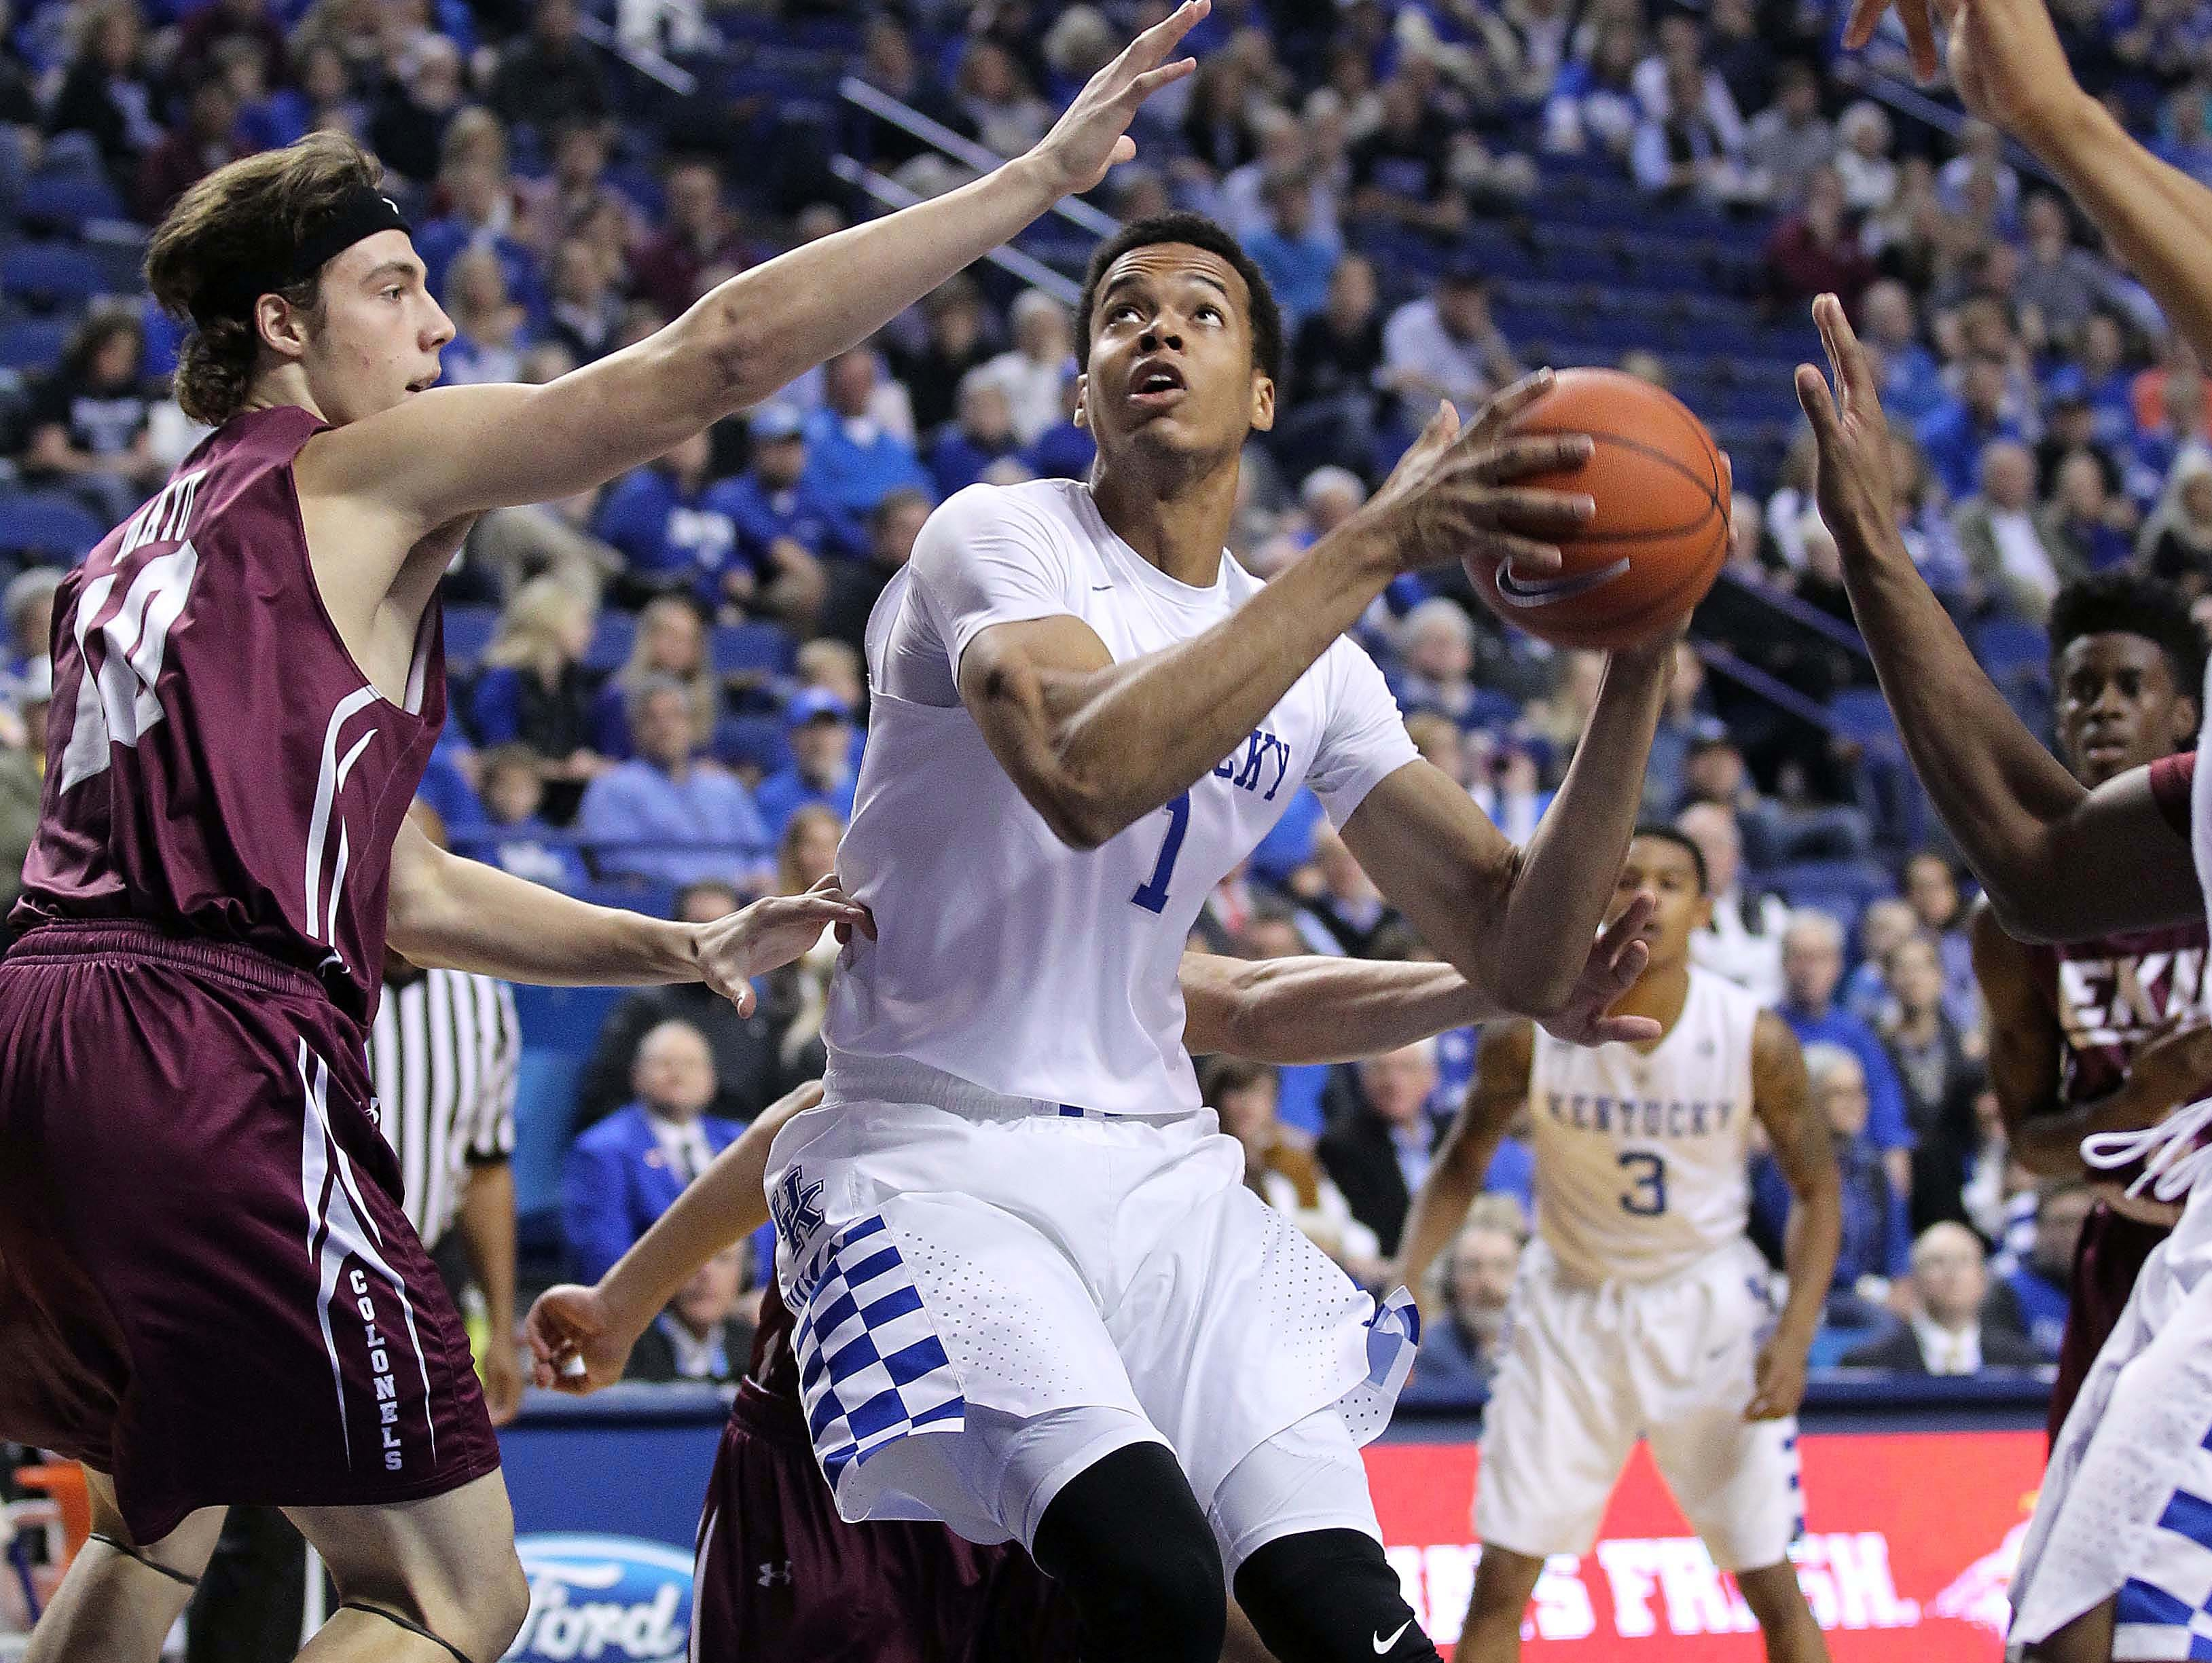 Dec 9, 2015; Lexington, KY, USA; Kentucky Wildcats forward Skal Labissiere (1) shoots the ball against Eastern Kentucky Colonels forward Nick Mayo (10) in the first half at Rupp Arena.